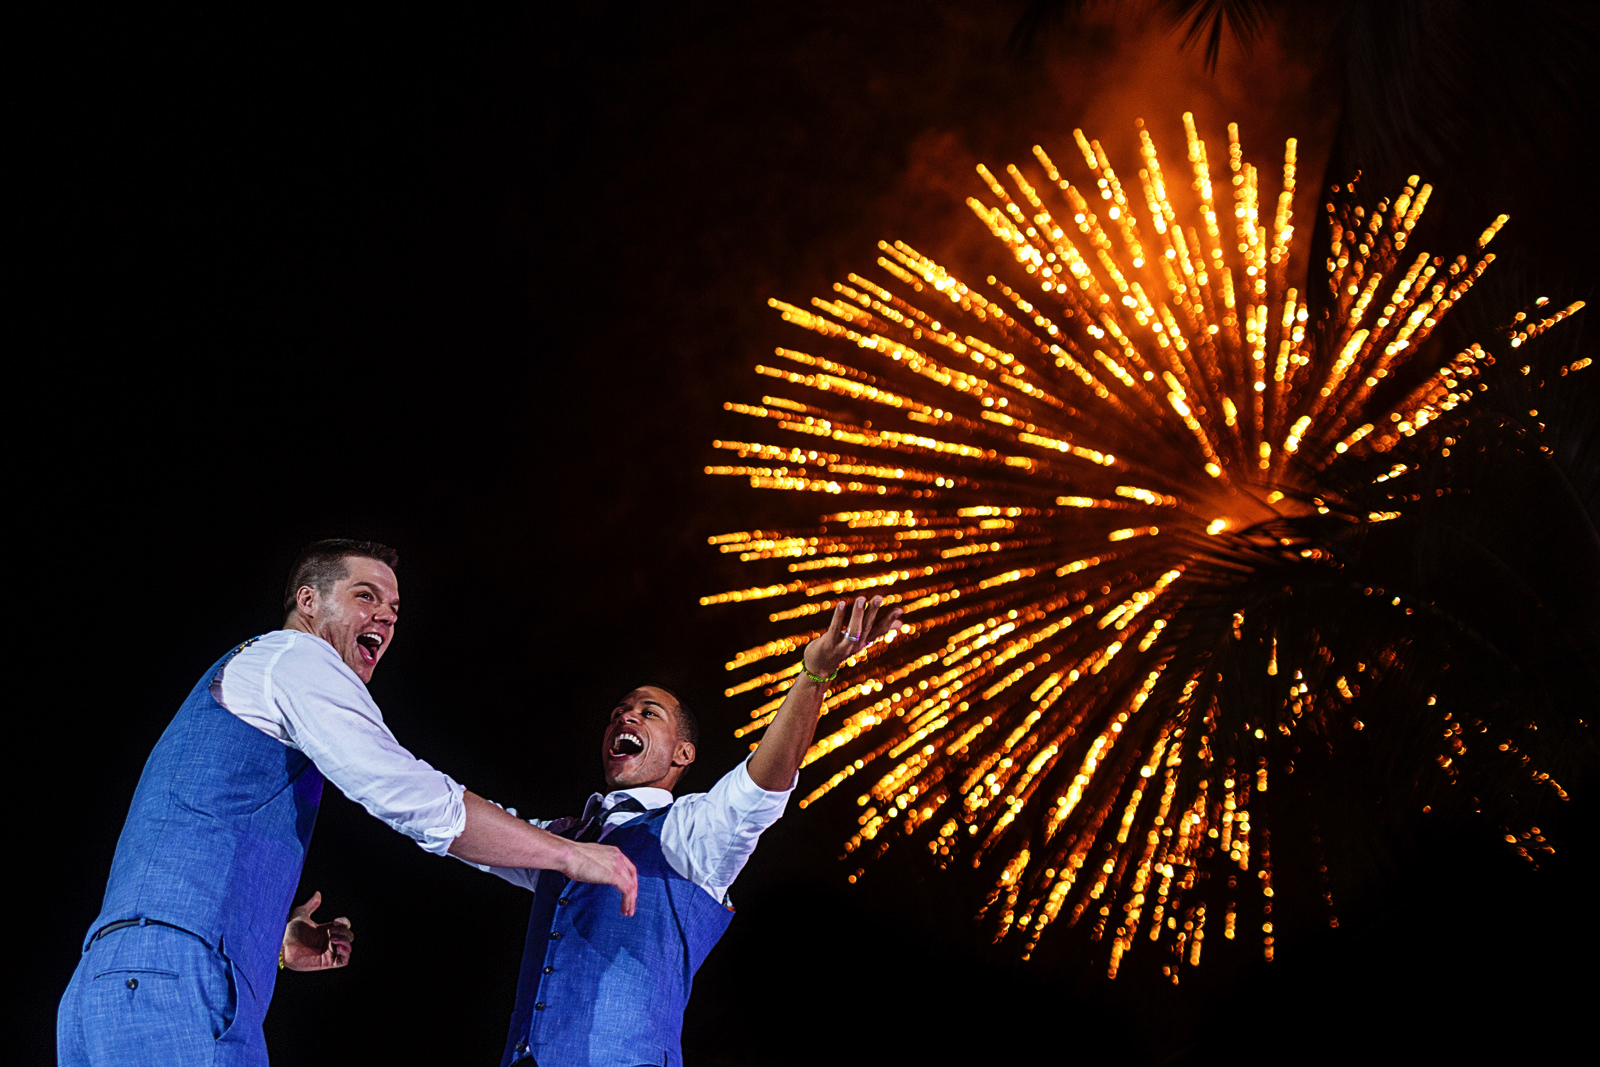 Fireworks in the sky at the end of the wedding dance